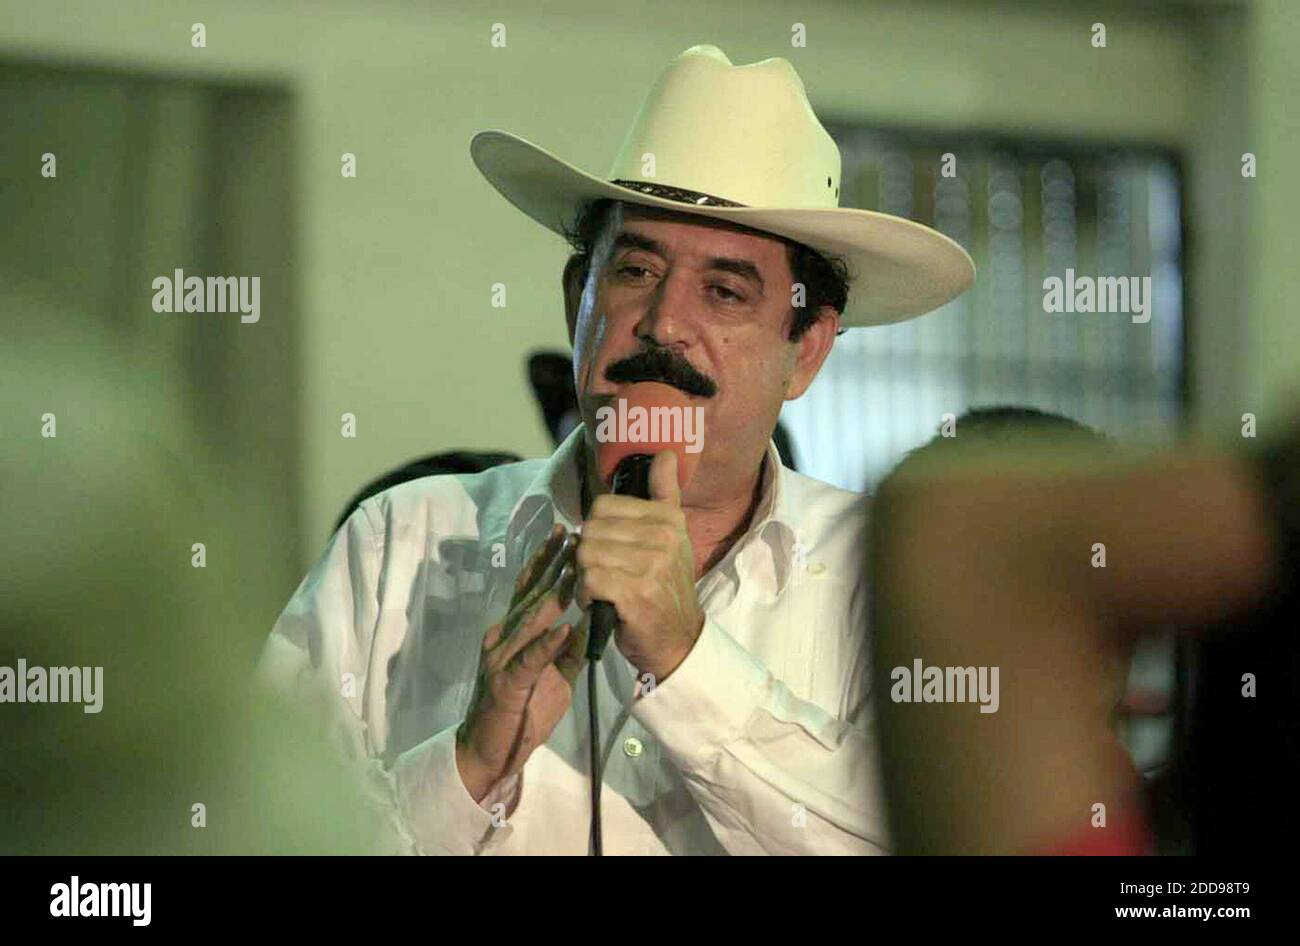 NO FILM, NO VIDEO, NO TV, NO DOCUMENTARY - Ousted President Manuel Zelaya speaks to his supporters during a visit at El Polideportivo sports center in the town of Ocotal in Nicaragua, on July 27, 2009. Photo by Pedro Portal/El Nuevo Herald/MCT/ABACAPRESS.COM Stock Photo